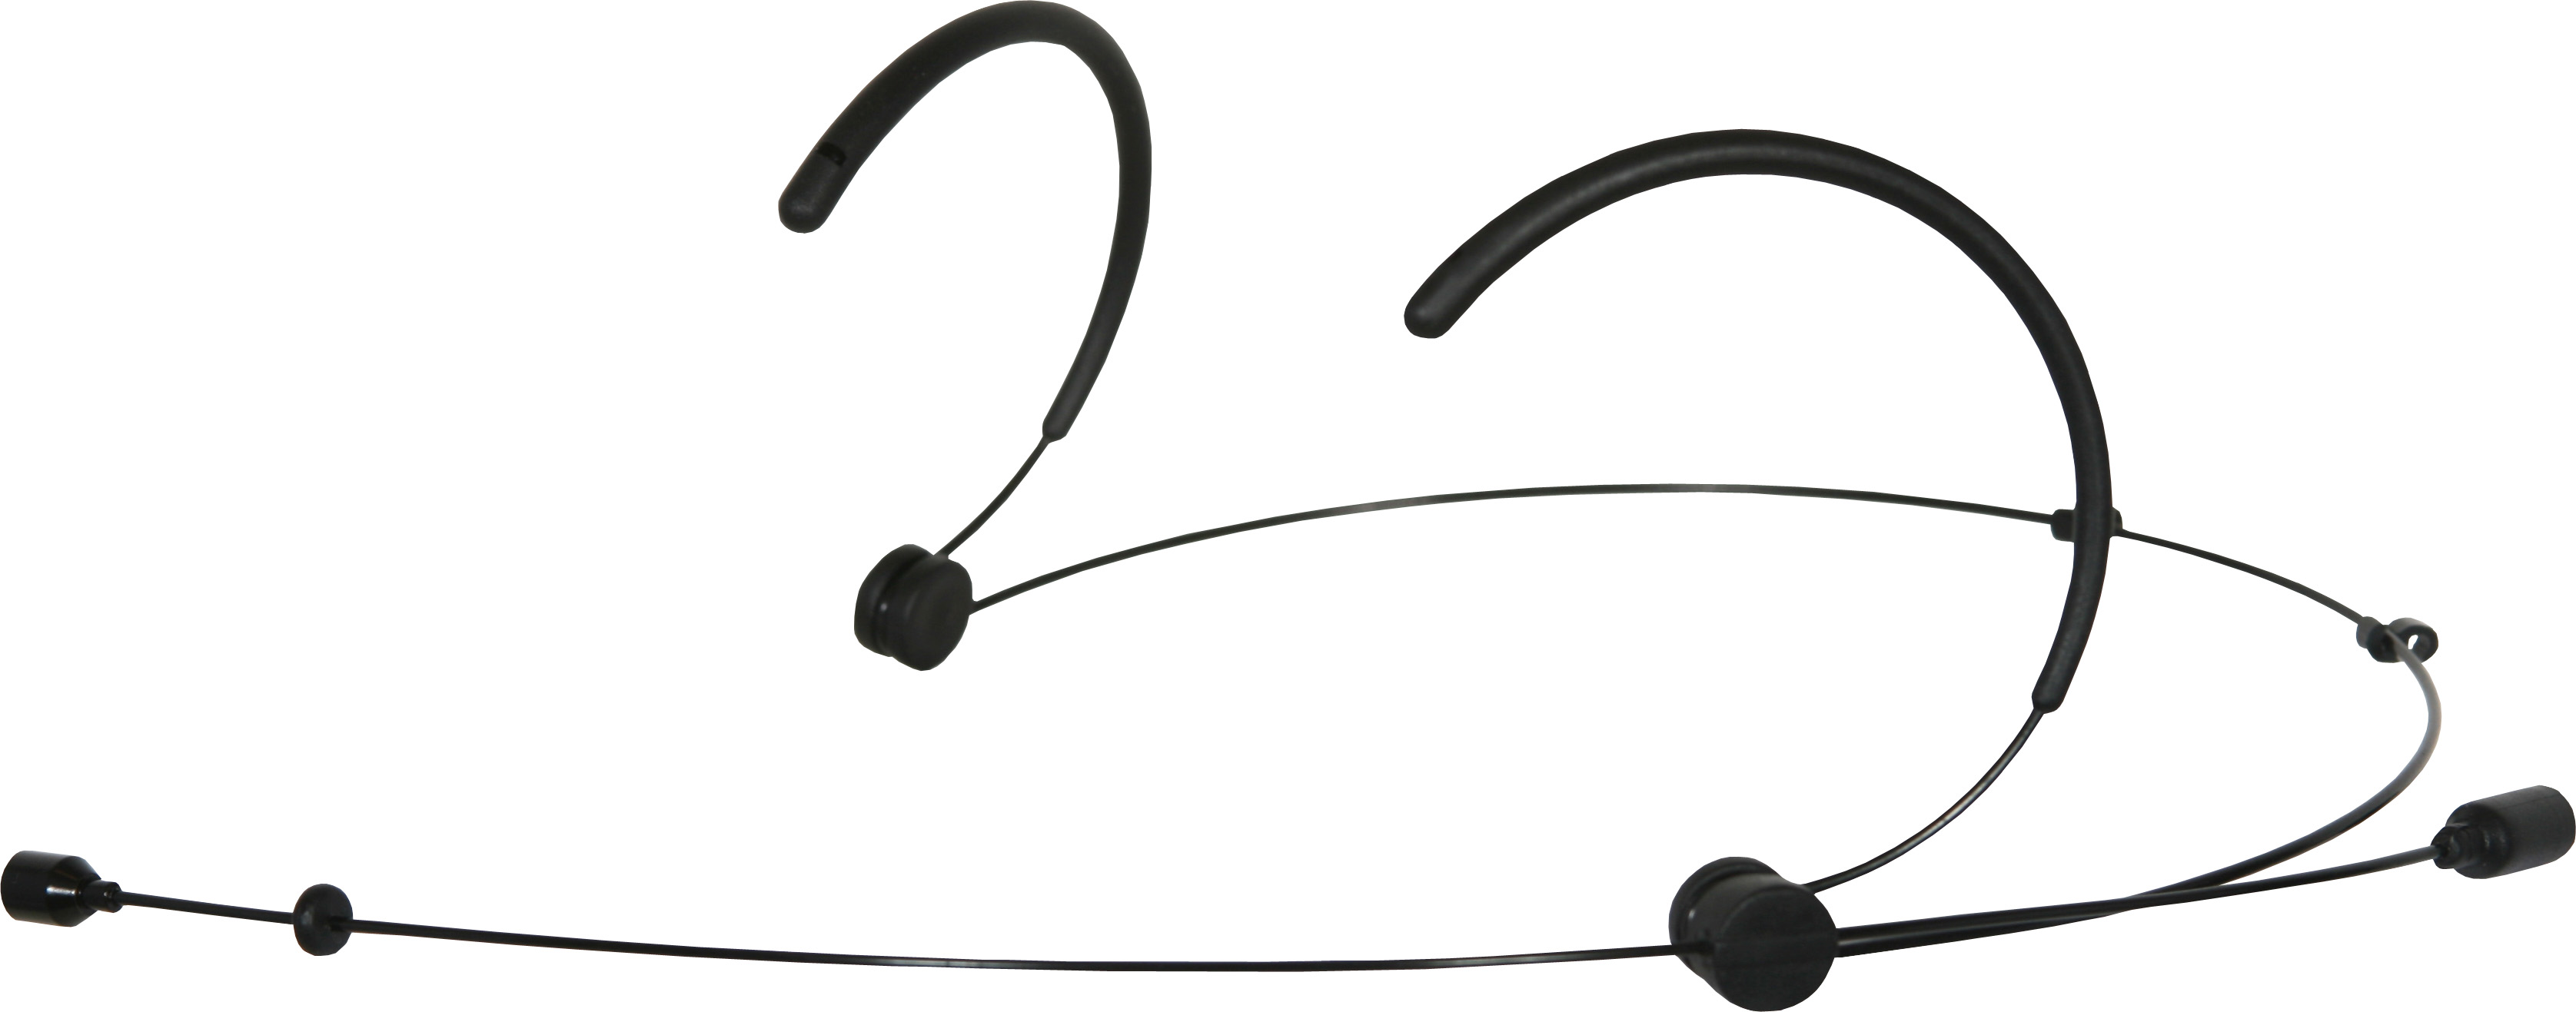 Galaxy Audio HS3-OBK-SEN Black Lightweight Omni Headset Mic Wired for Sennheiser